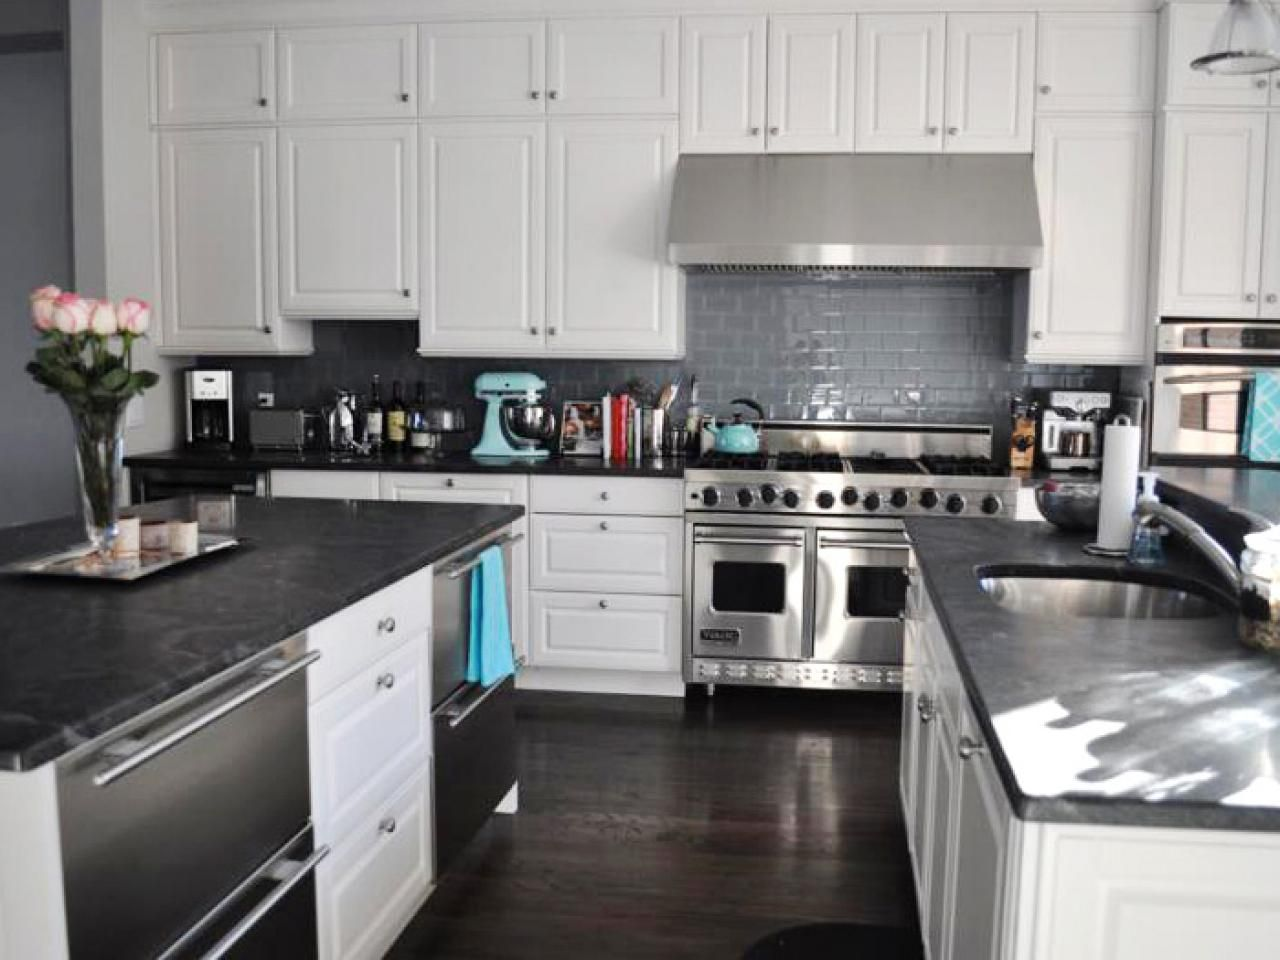 Marble Kitchen Countertop Options Kitchen Designs Choose Kitchen Layouts Re Kitchen Countertop Choices Kitchen Countertop Options Marble Kitchen Counters